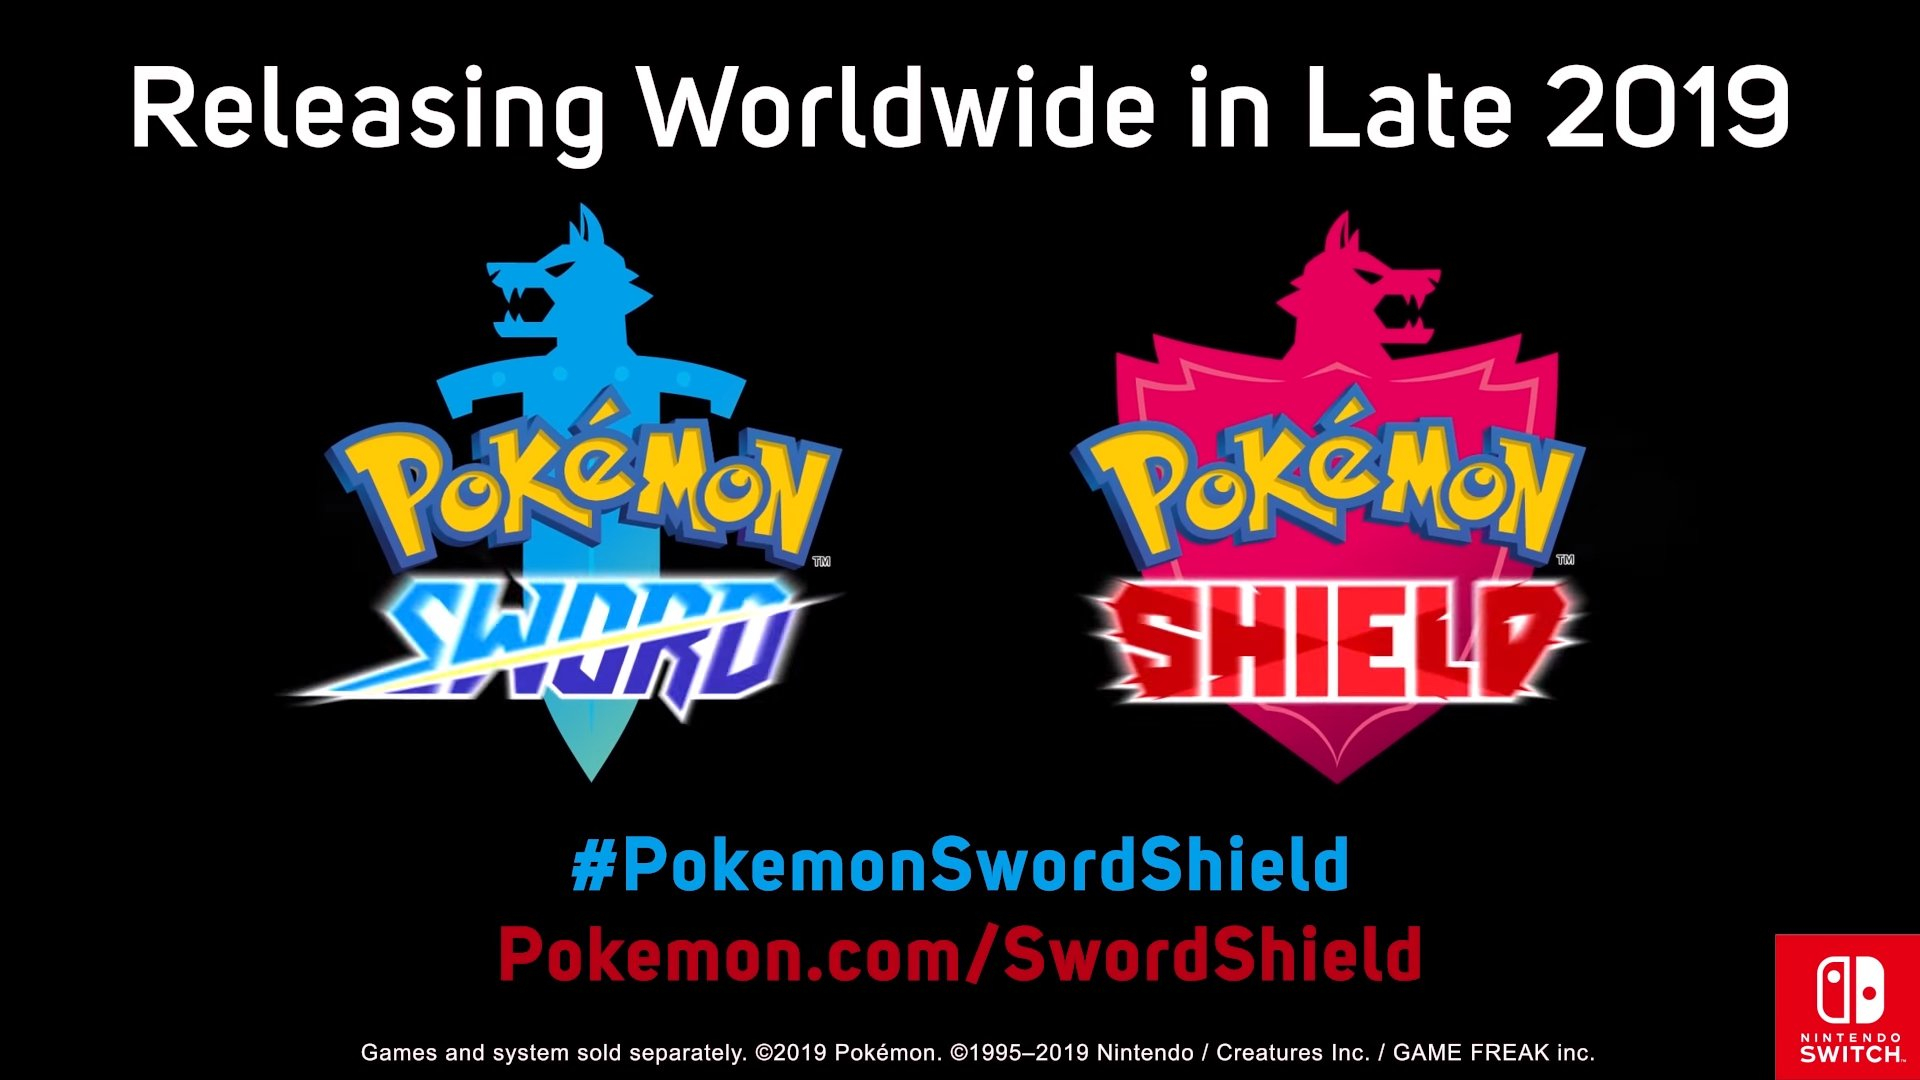 Pokemon Sword & Shield announced for Switch Header Image